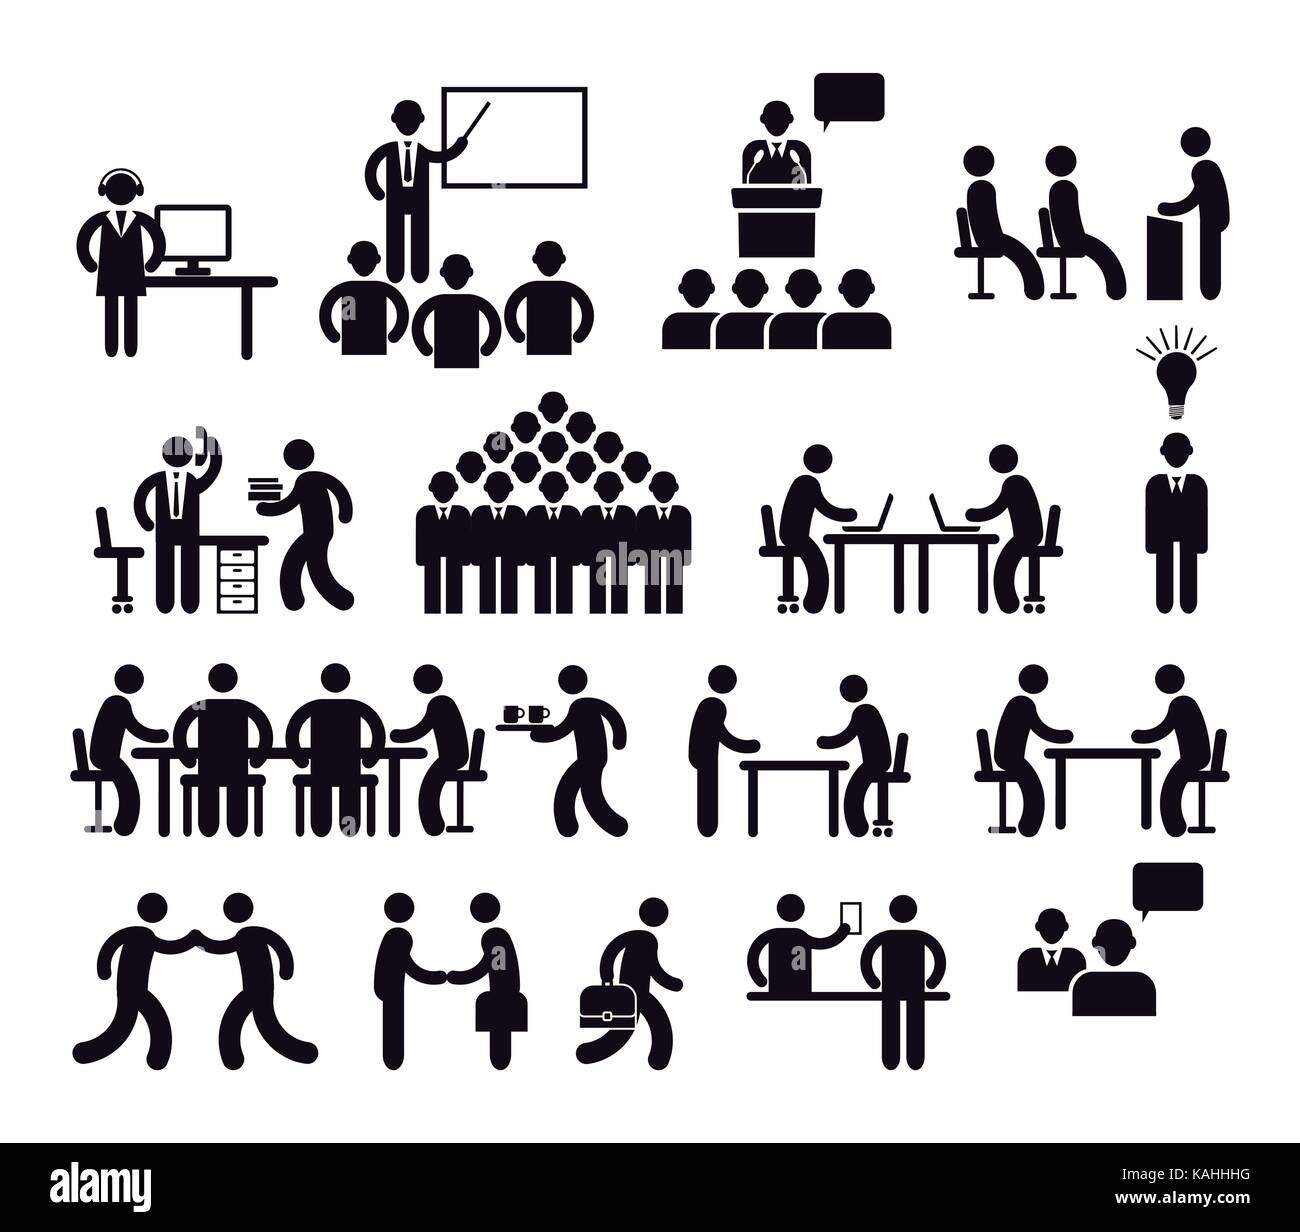 Workplace concept, pictogram illustration - Stock Image